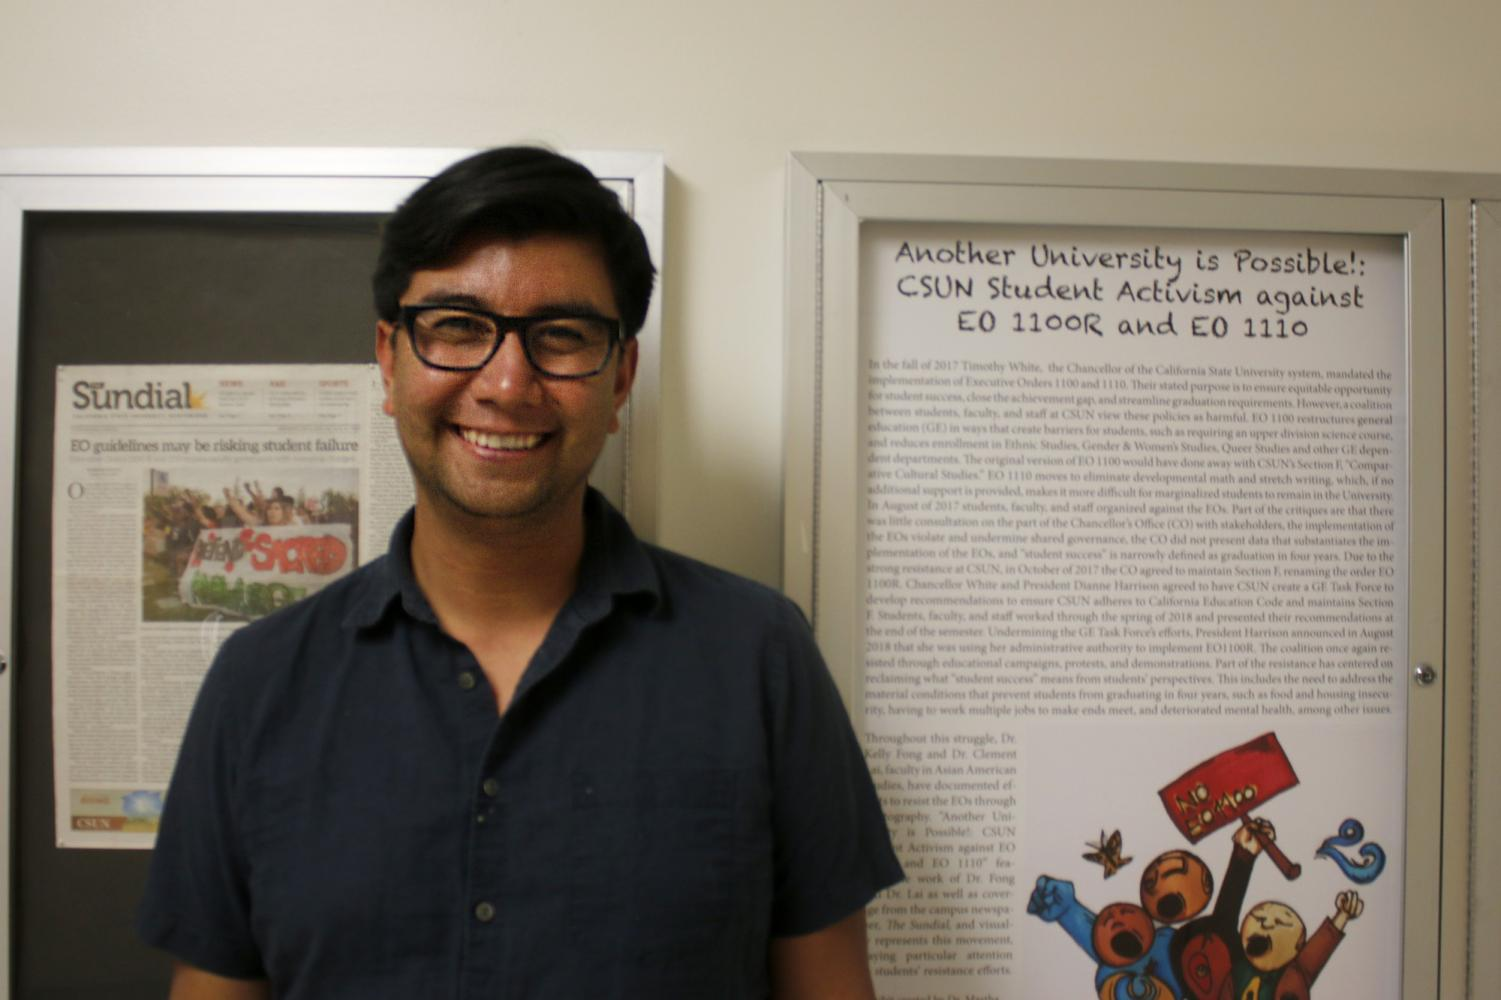 Professor of Chicano/a studies Stevie Ruiz stands next to a poster on student activism for ethnic studies Photo credit: Raychel Stewart